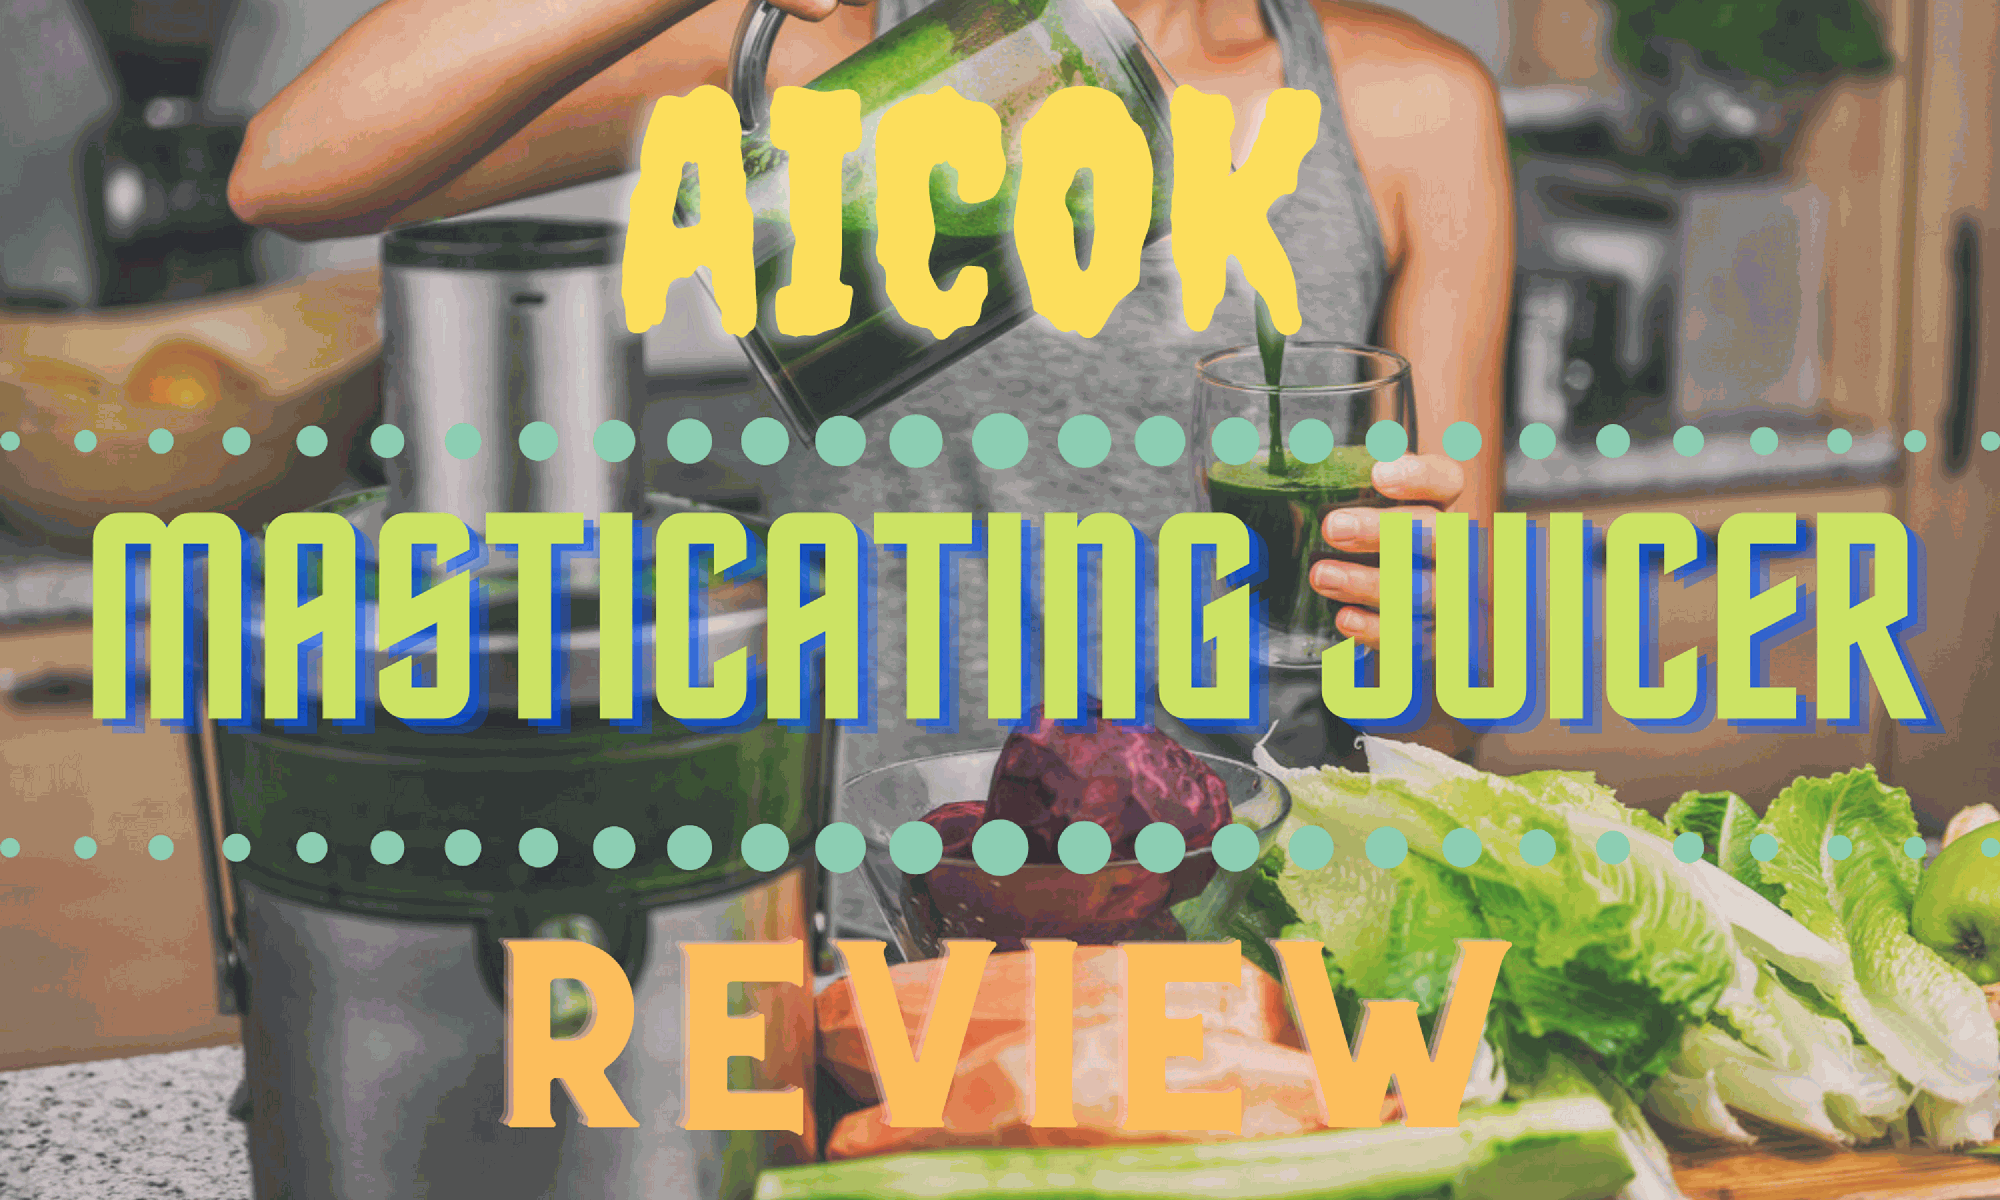 Aicok Juicer Features Image